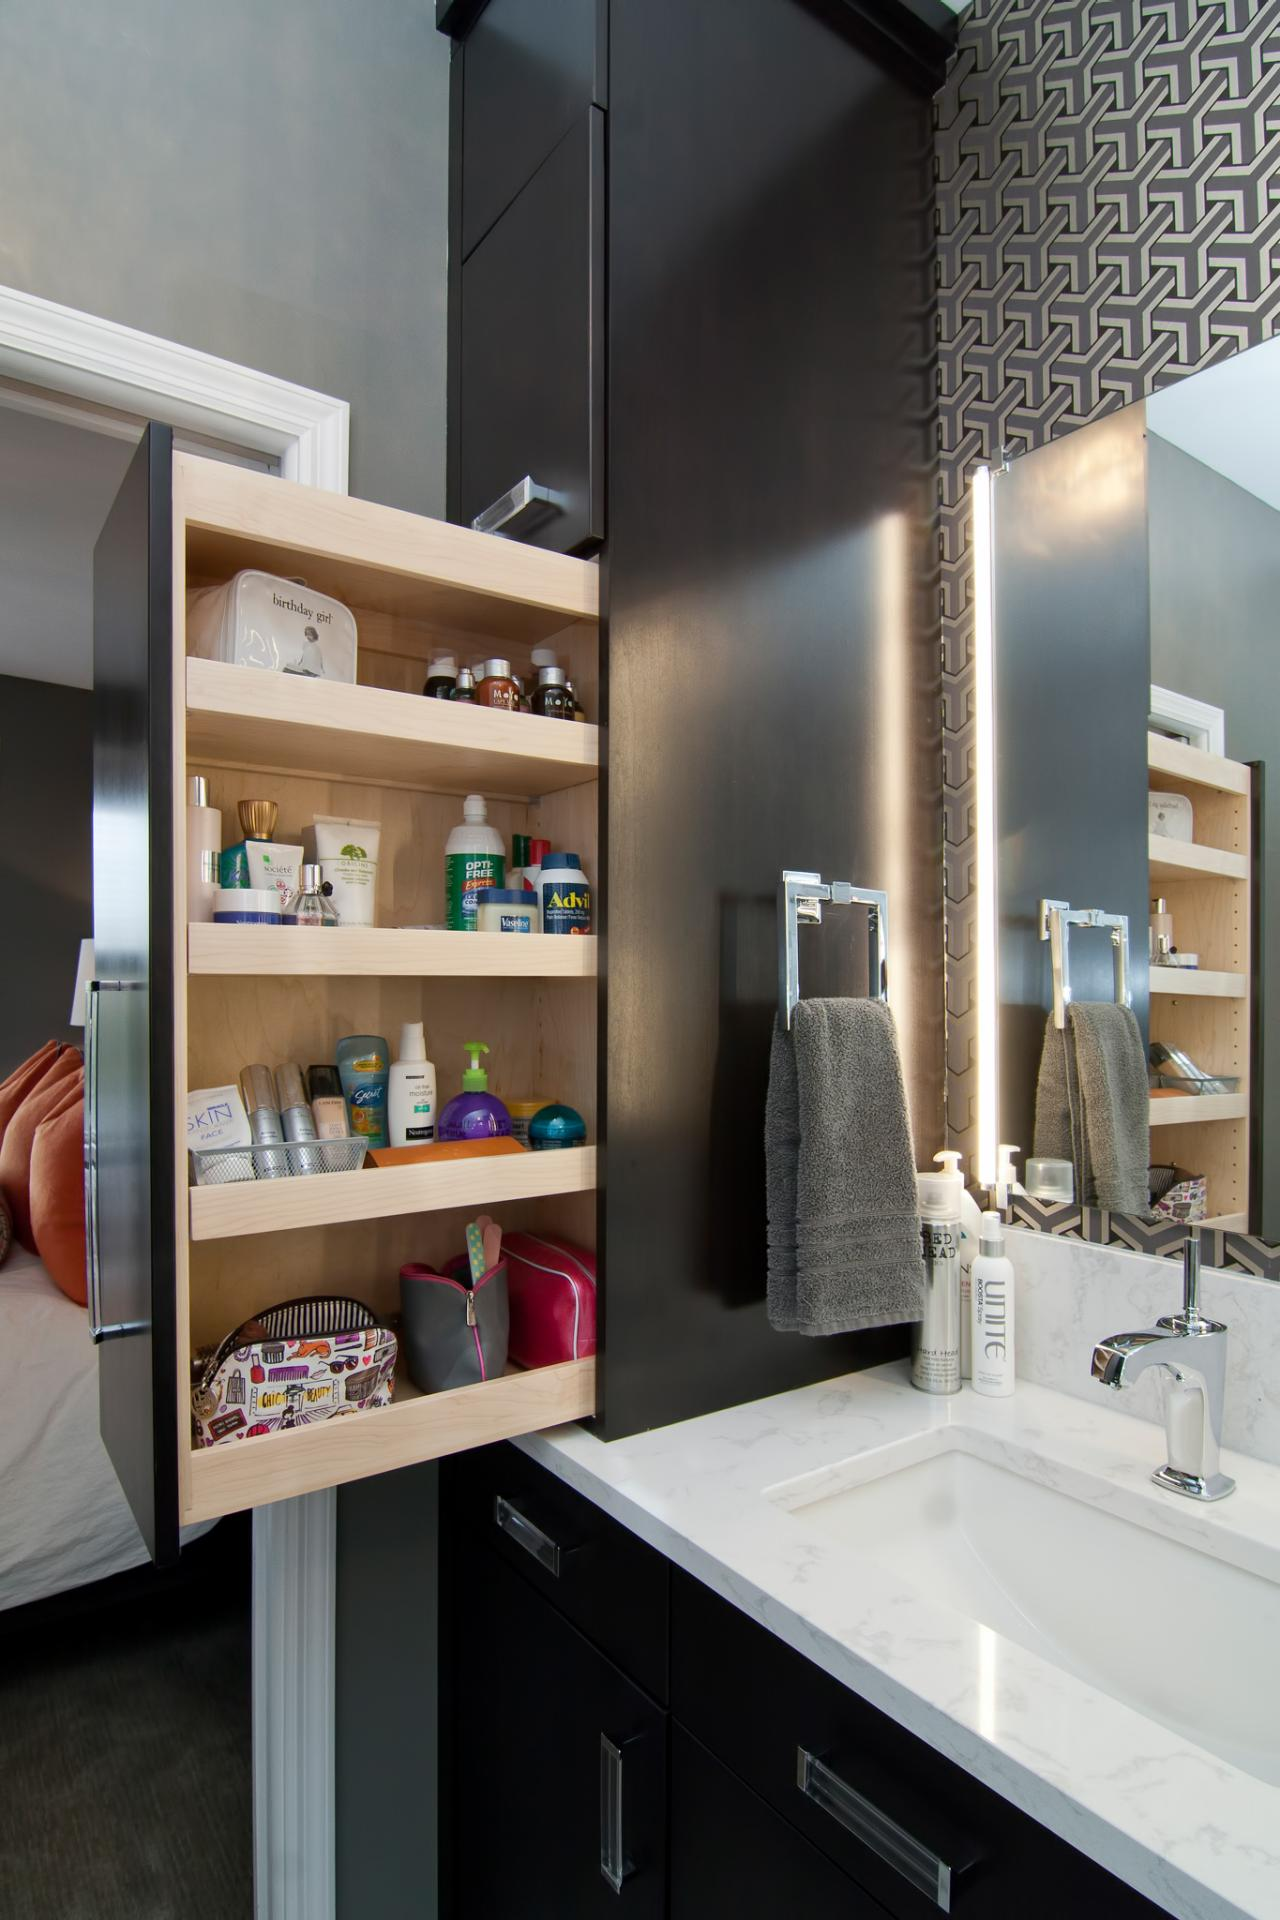 Bathroom Cabinets Designs Photos : Small space bathroom storage ideas diy network